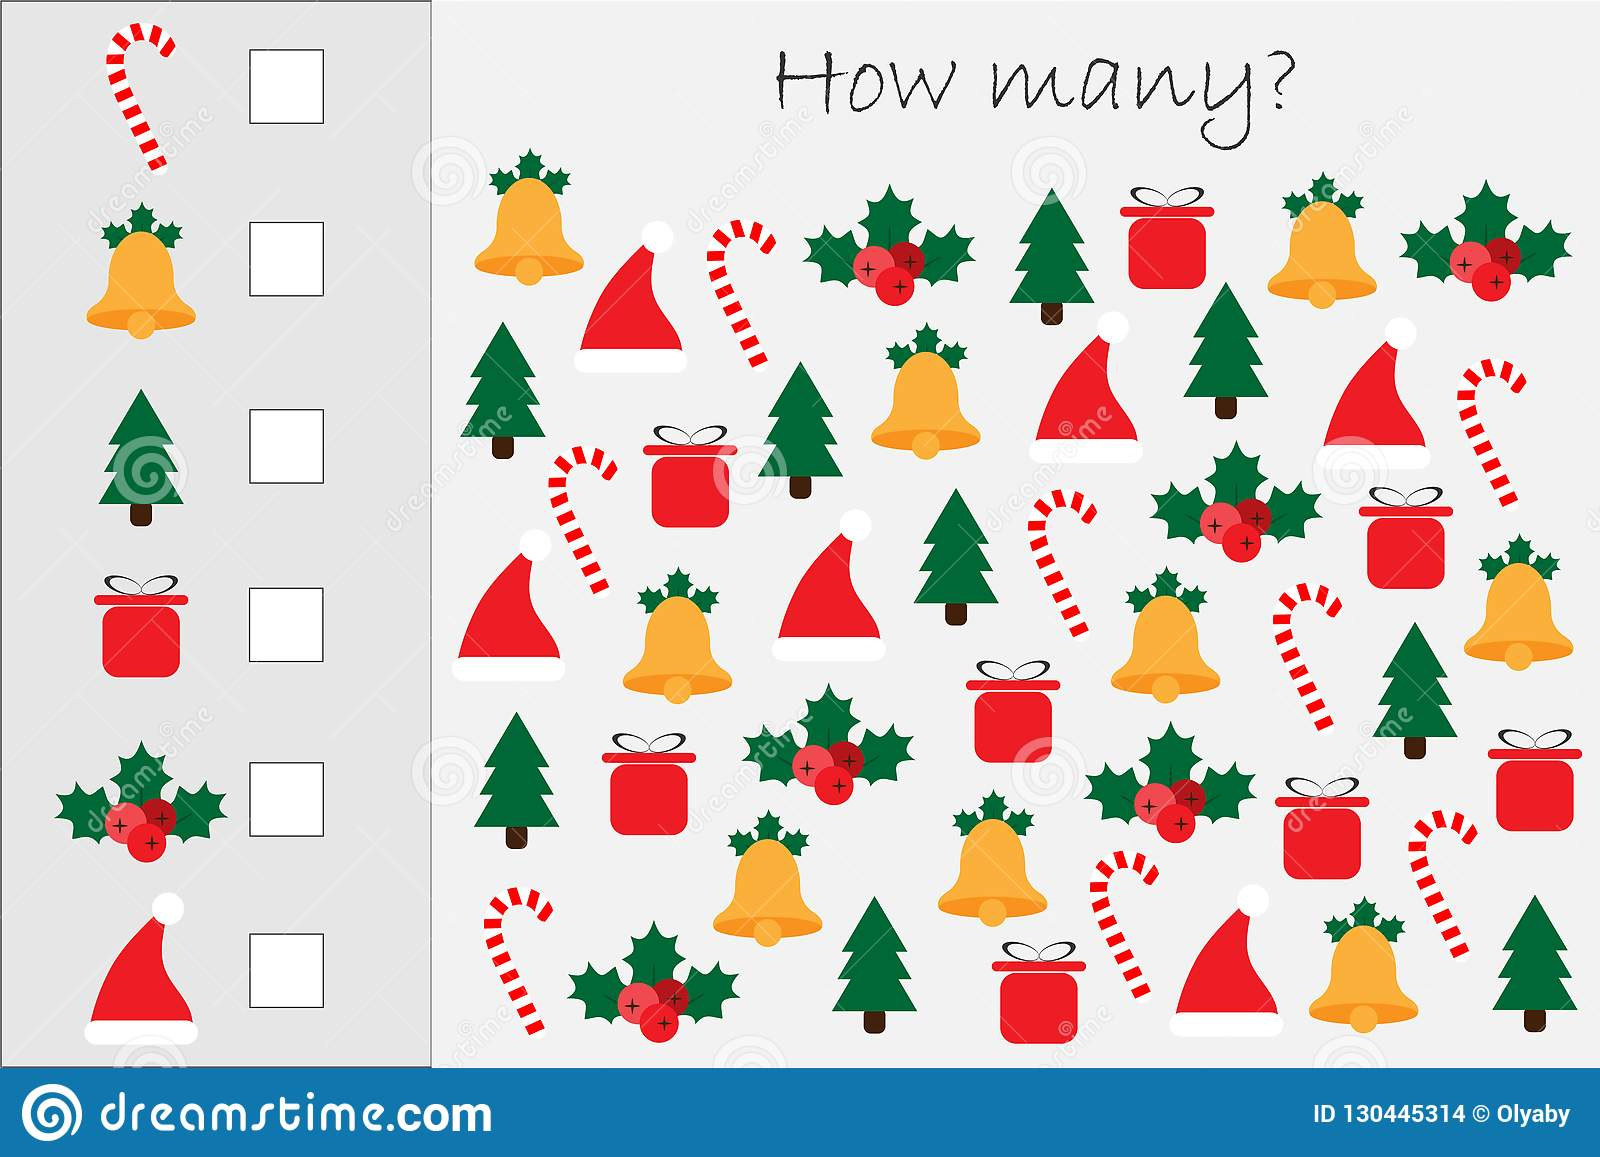 How Many Counting Game With Xmas Pictures For Kids